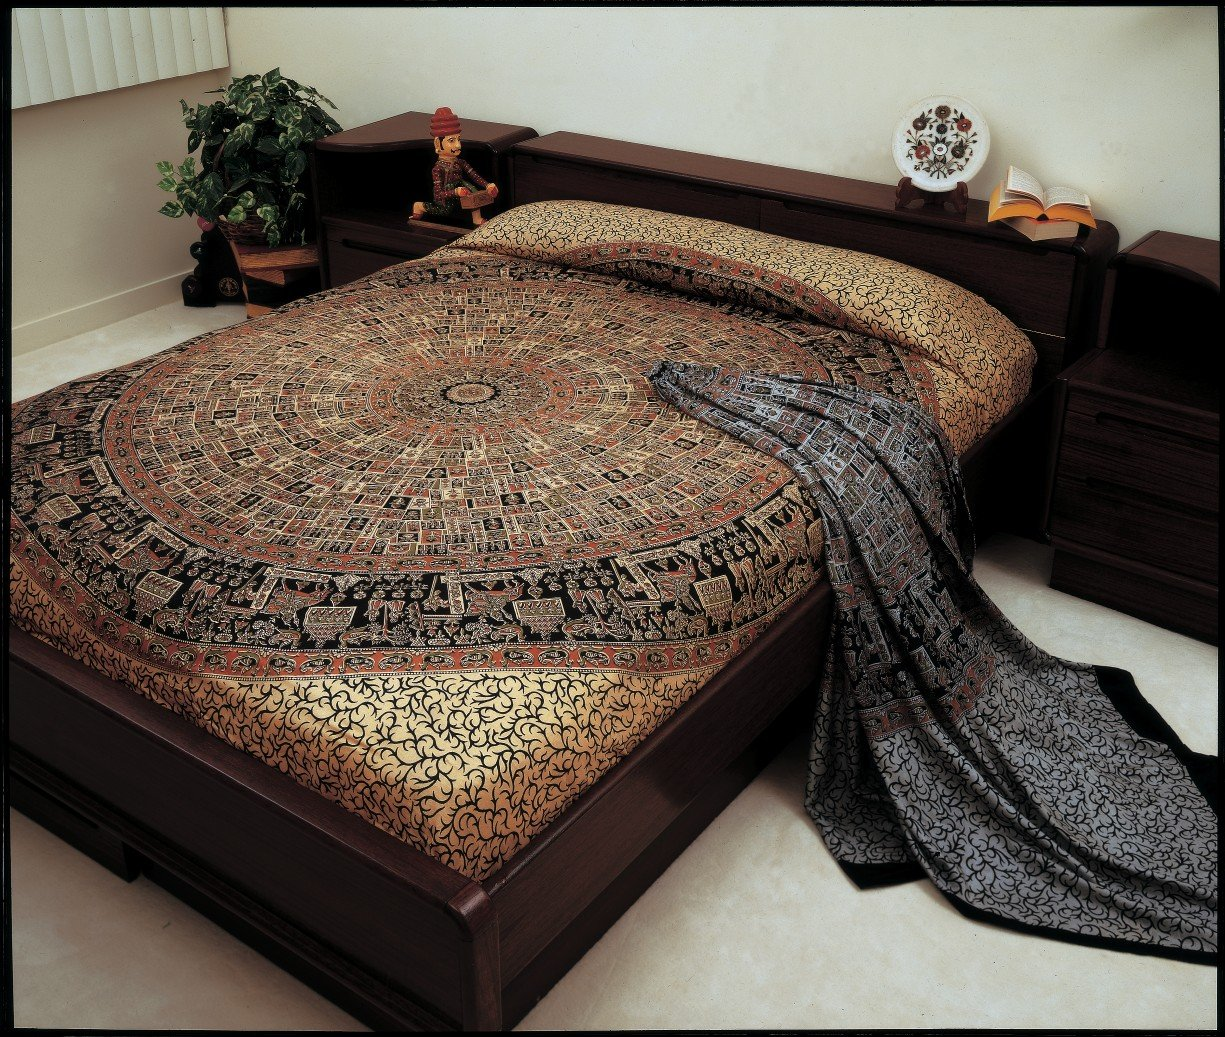 Bagroo Print Indian Bedspread, Double Size